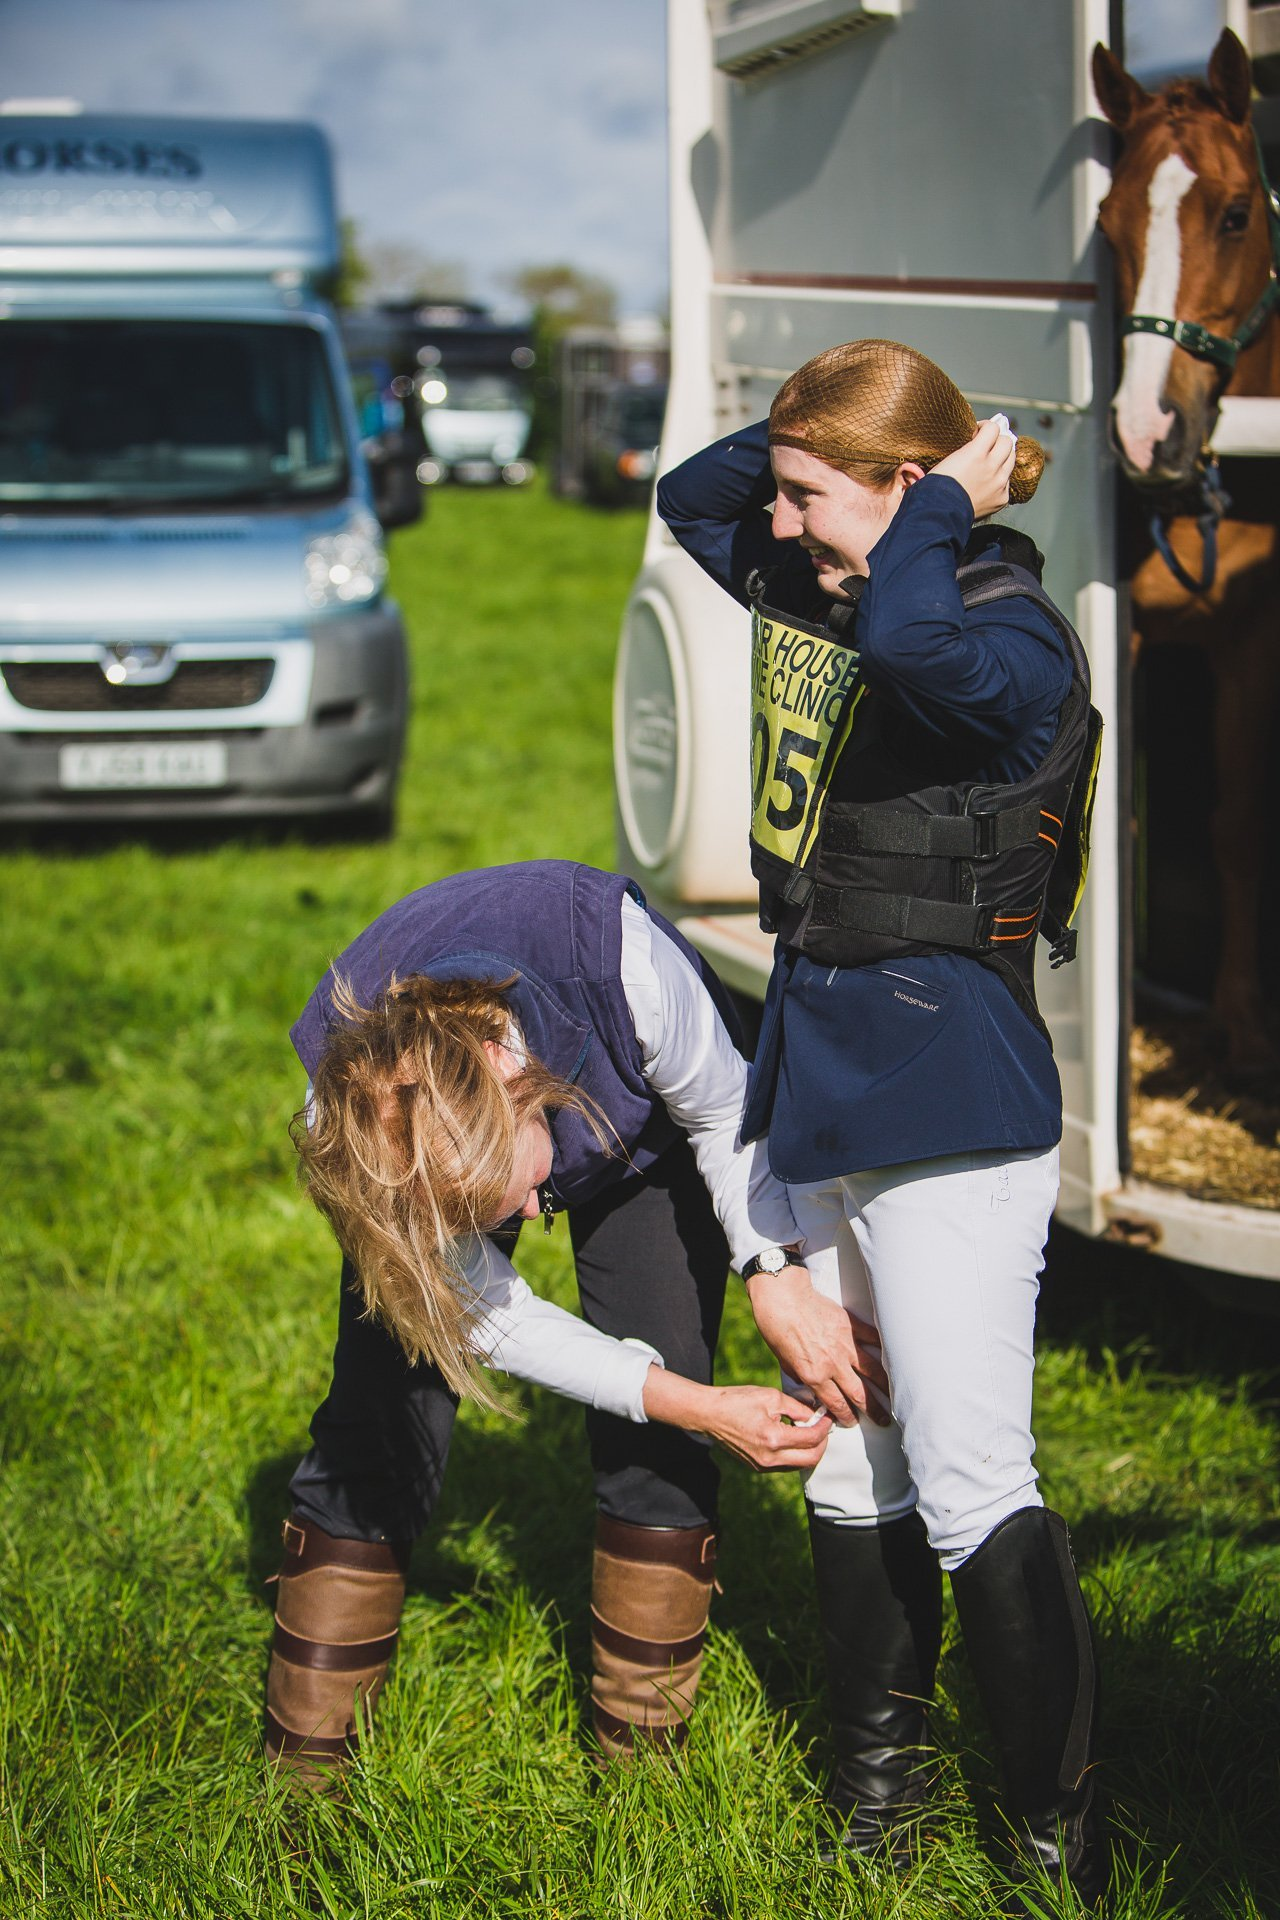 issie's mum helping her get ready for show jumping